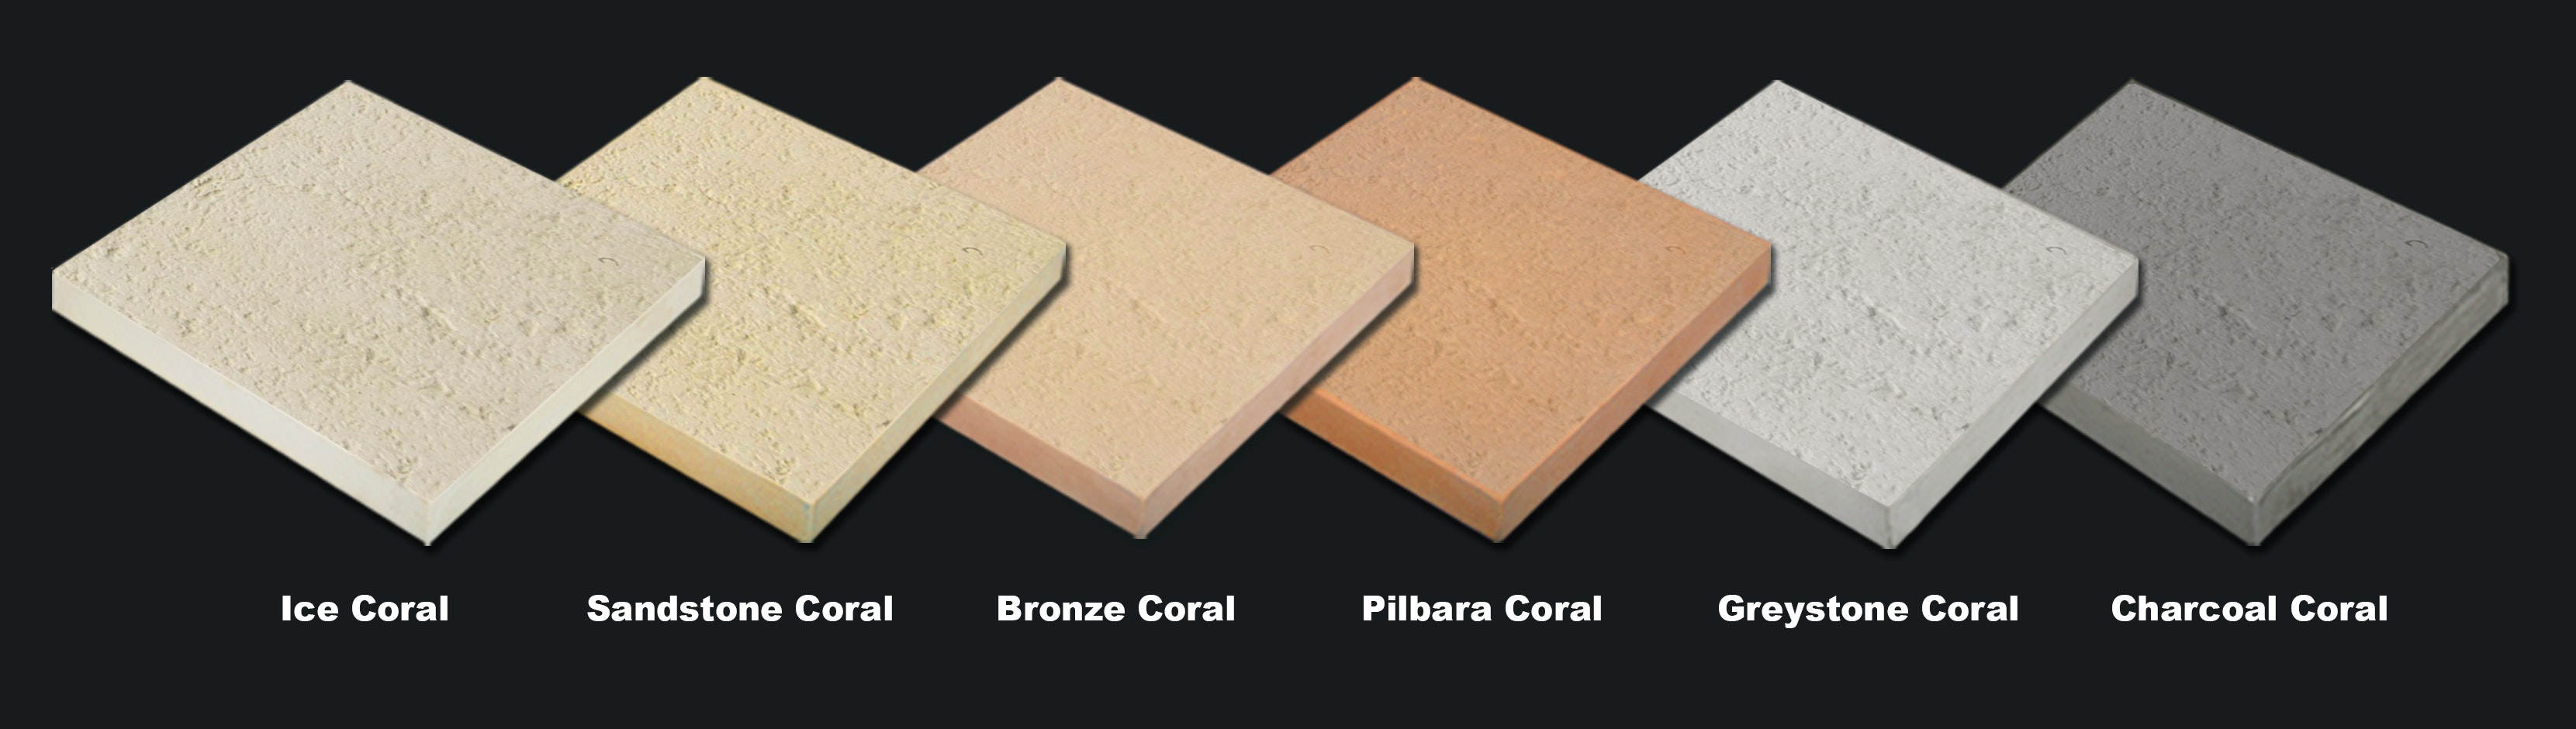 limestone-coral-colours-website.jpg